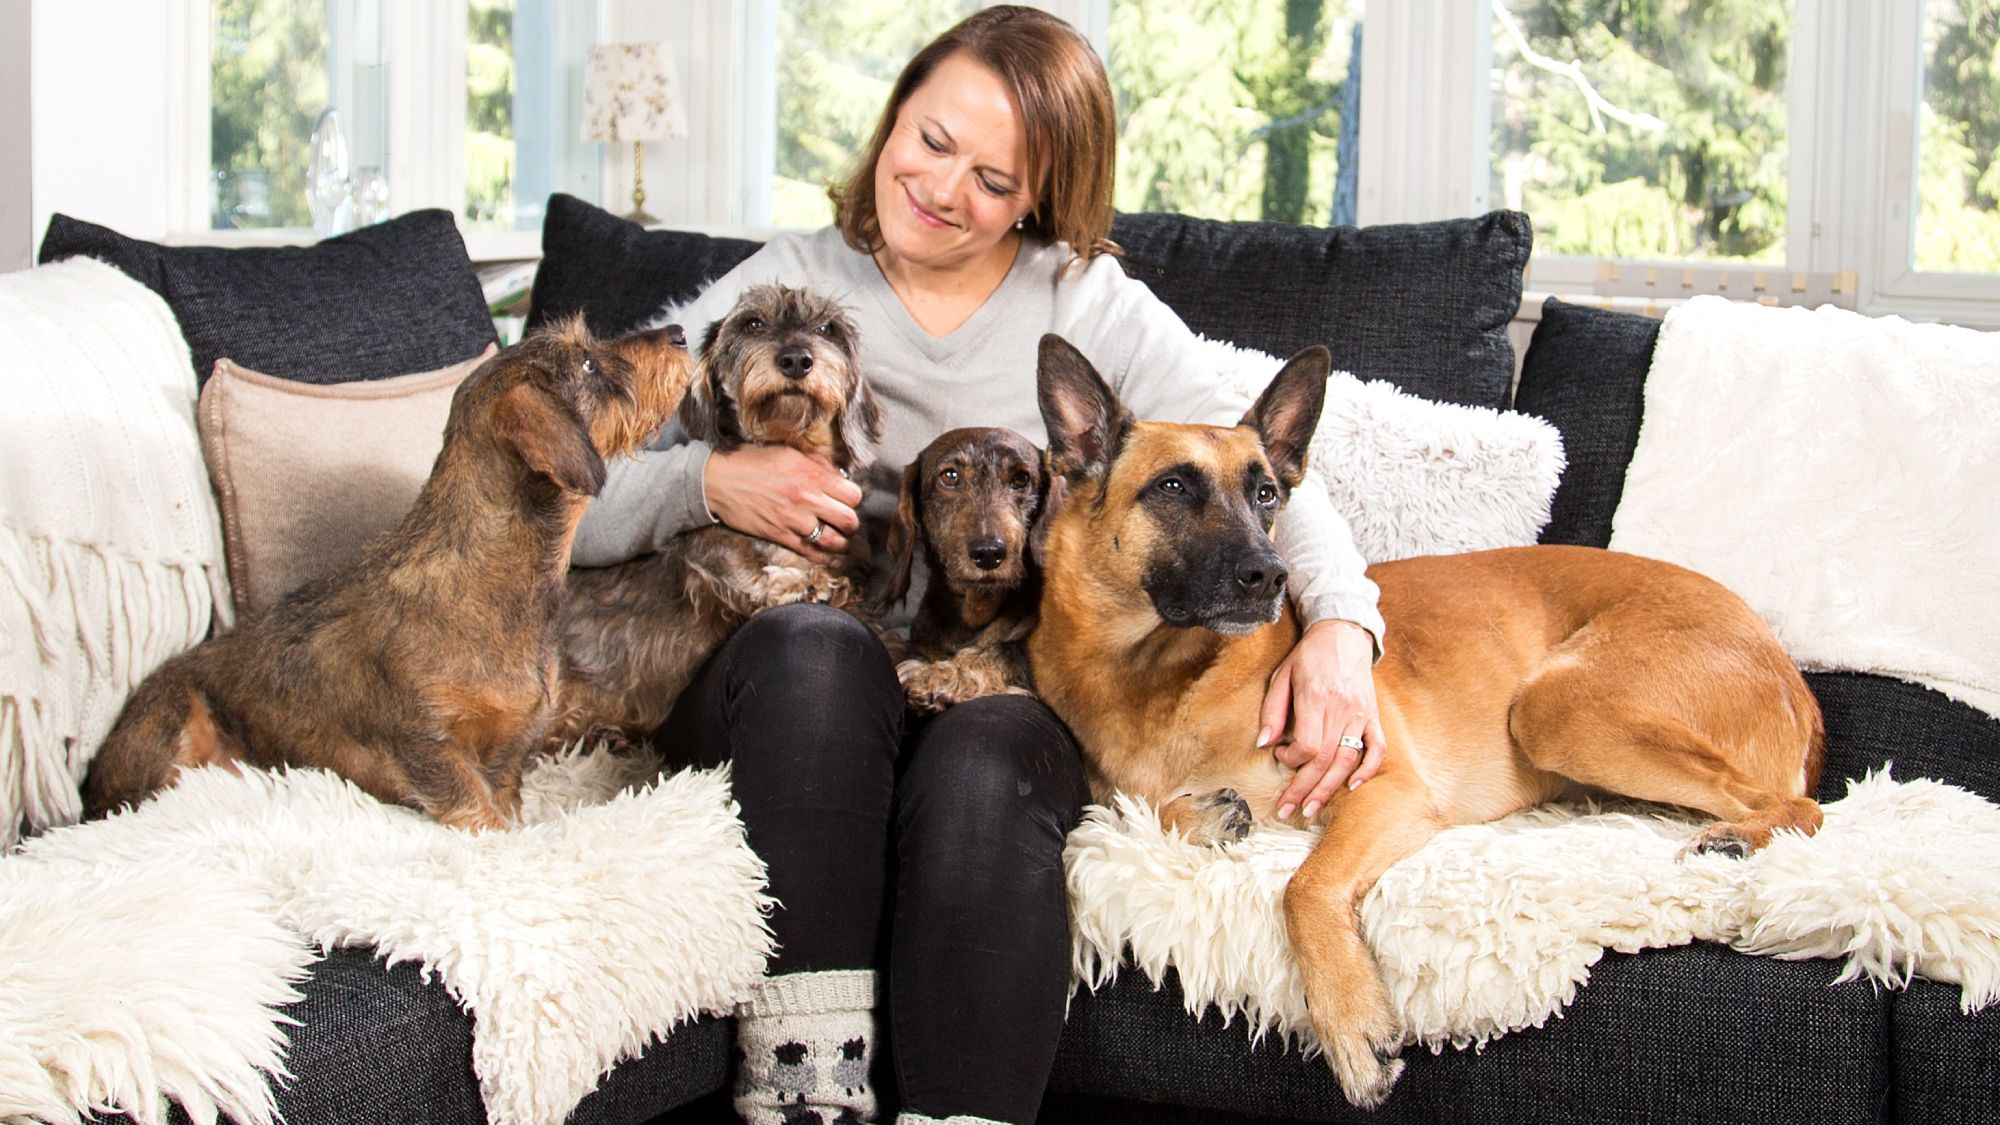 Woman sitting in a sofa accopannied with dogs